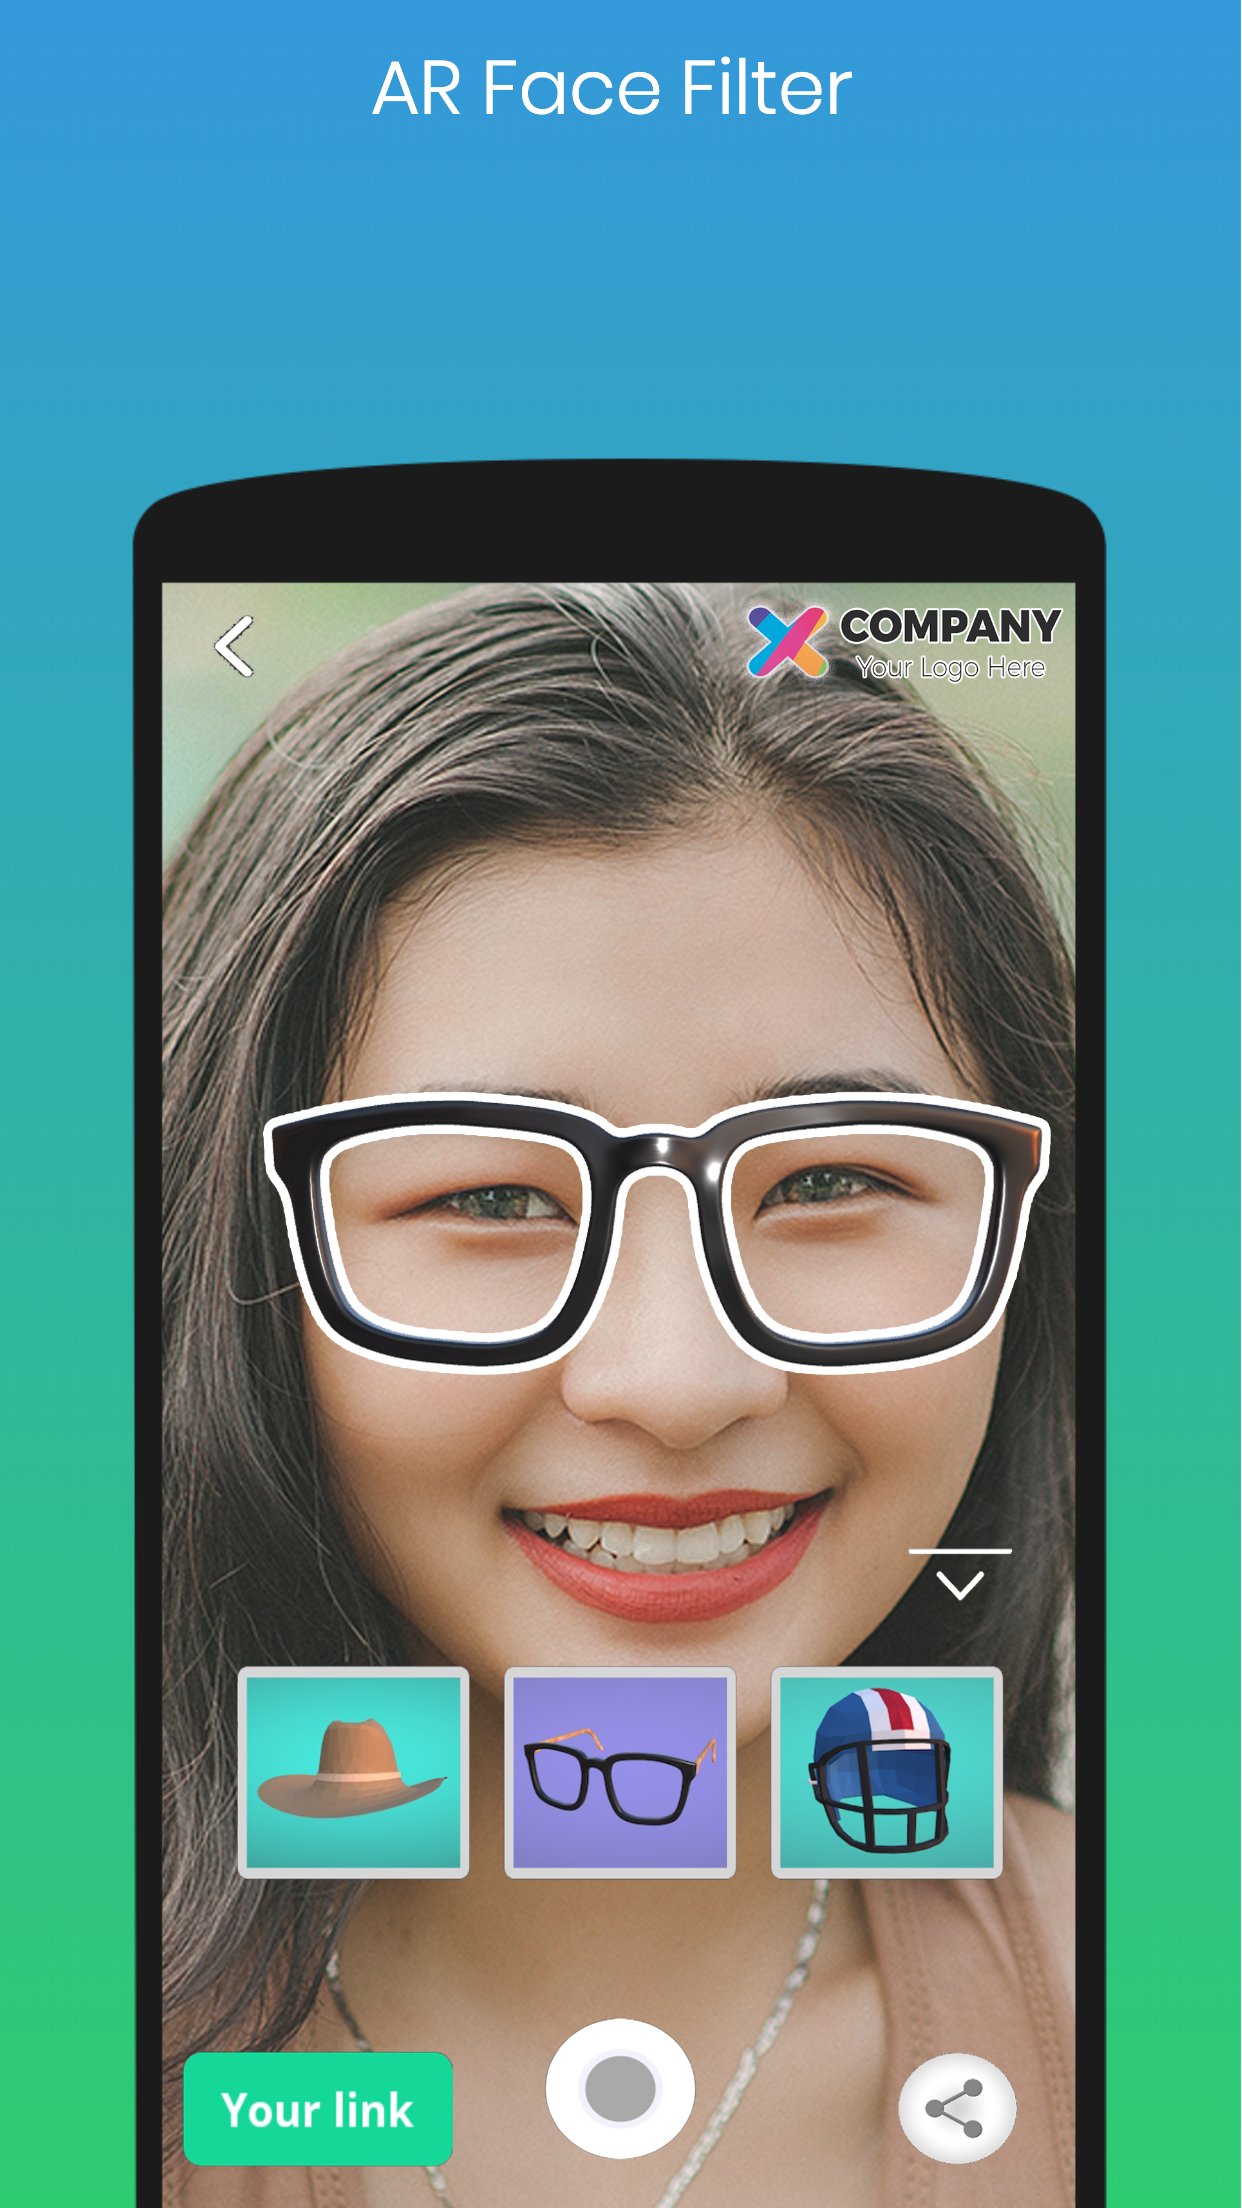 XRTY Viewer - AR  Digital Campaign - IOS, Android